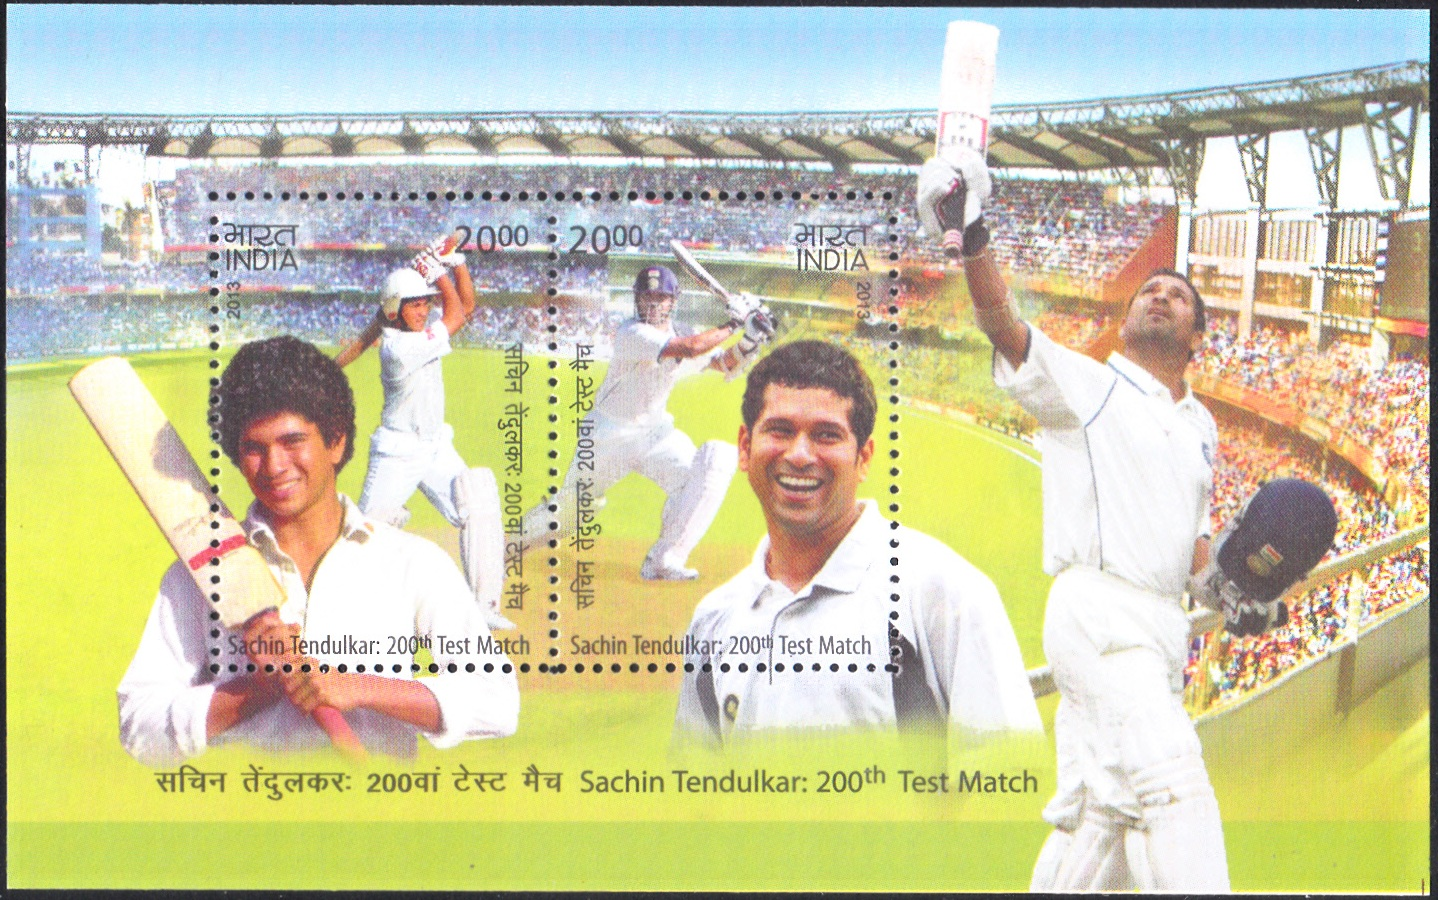 Sachin Tendulkar, 200th Test Match - Miniature Sheet